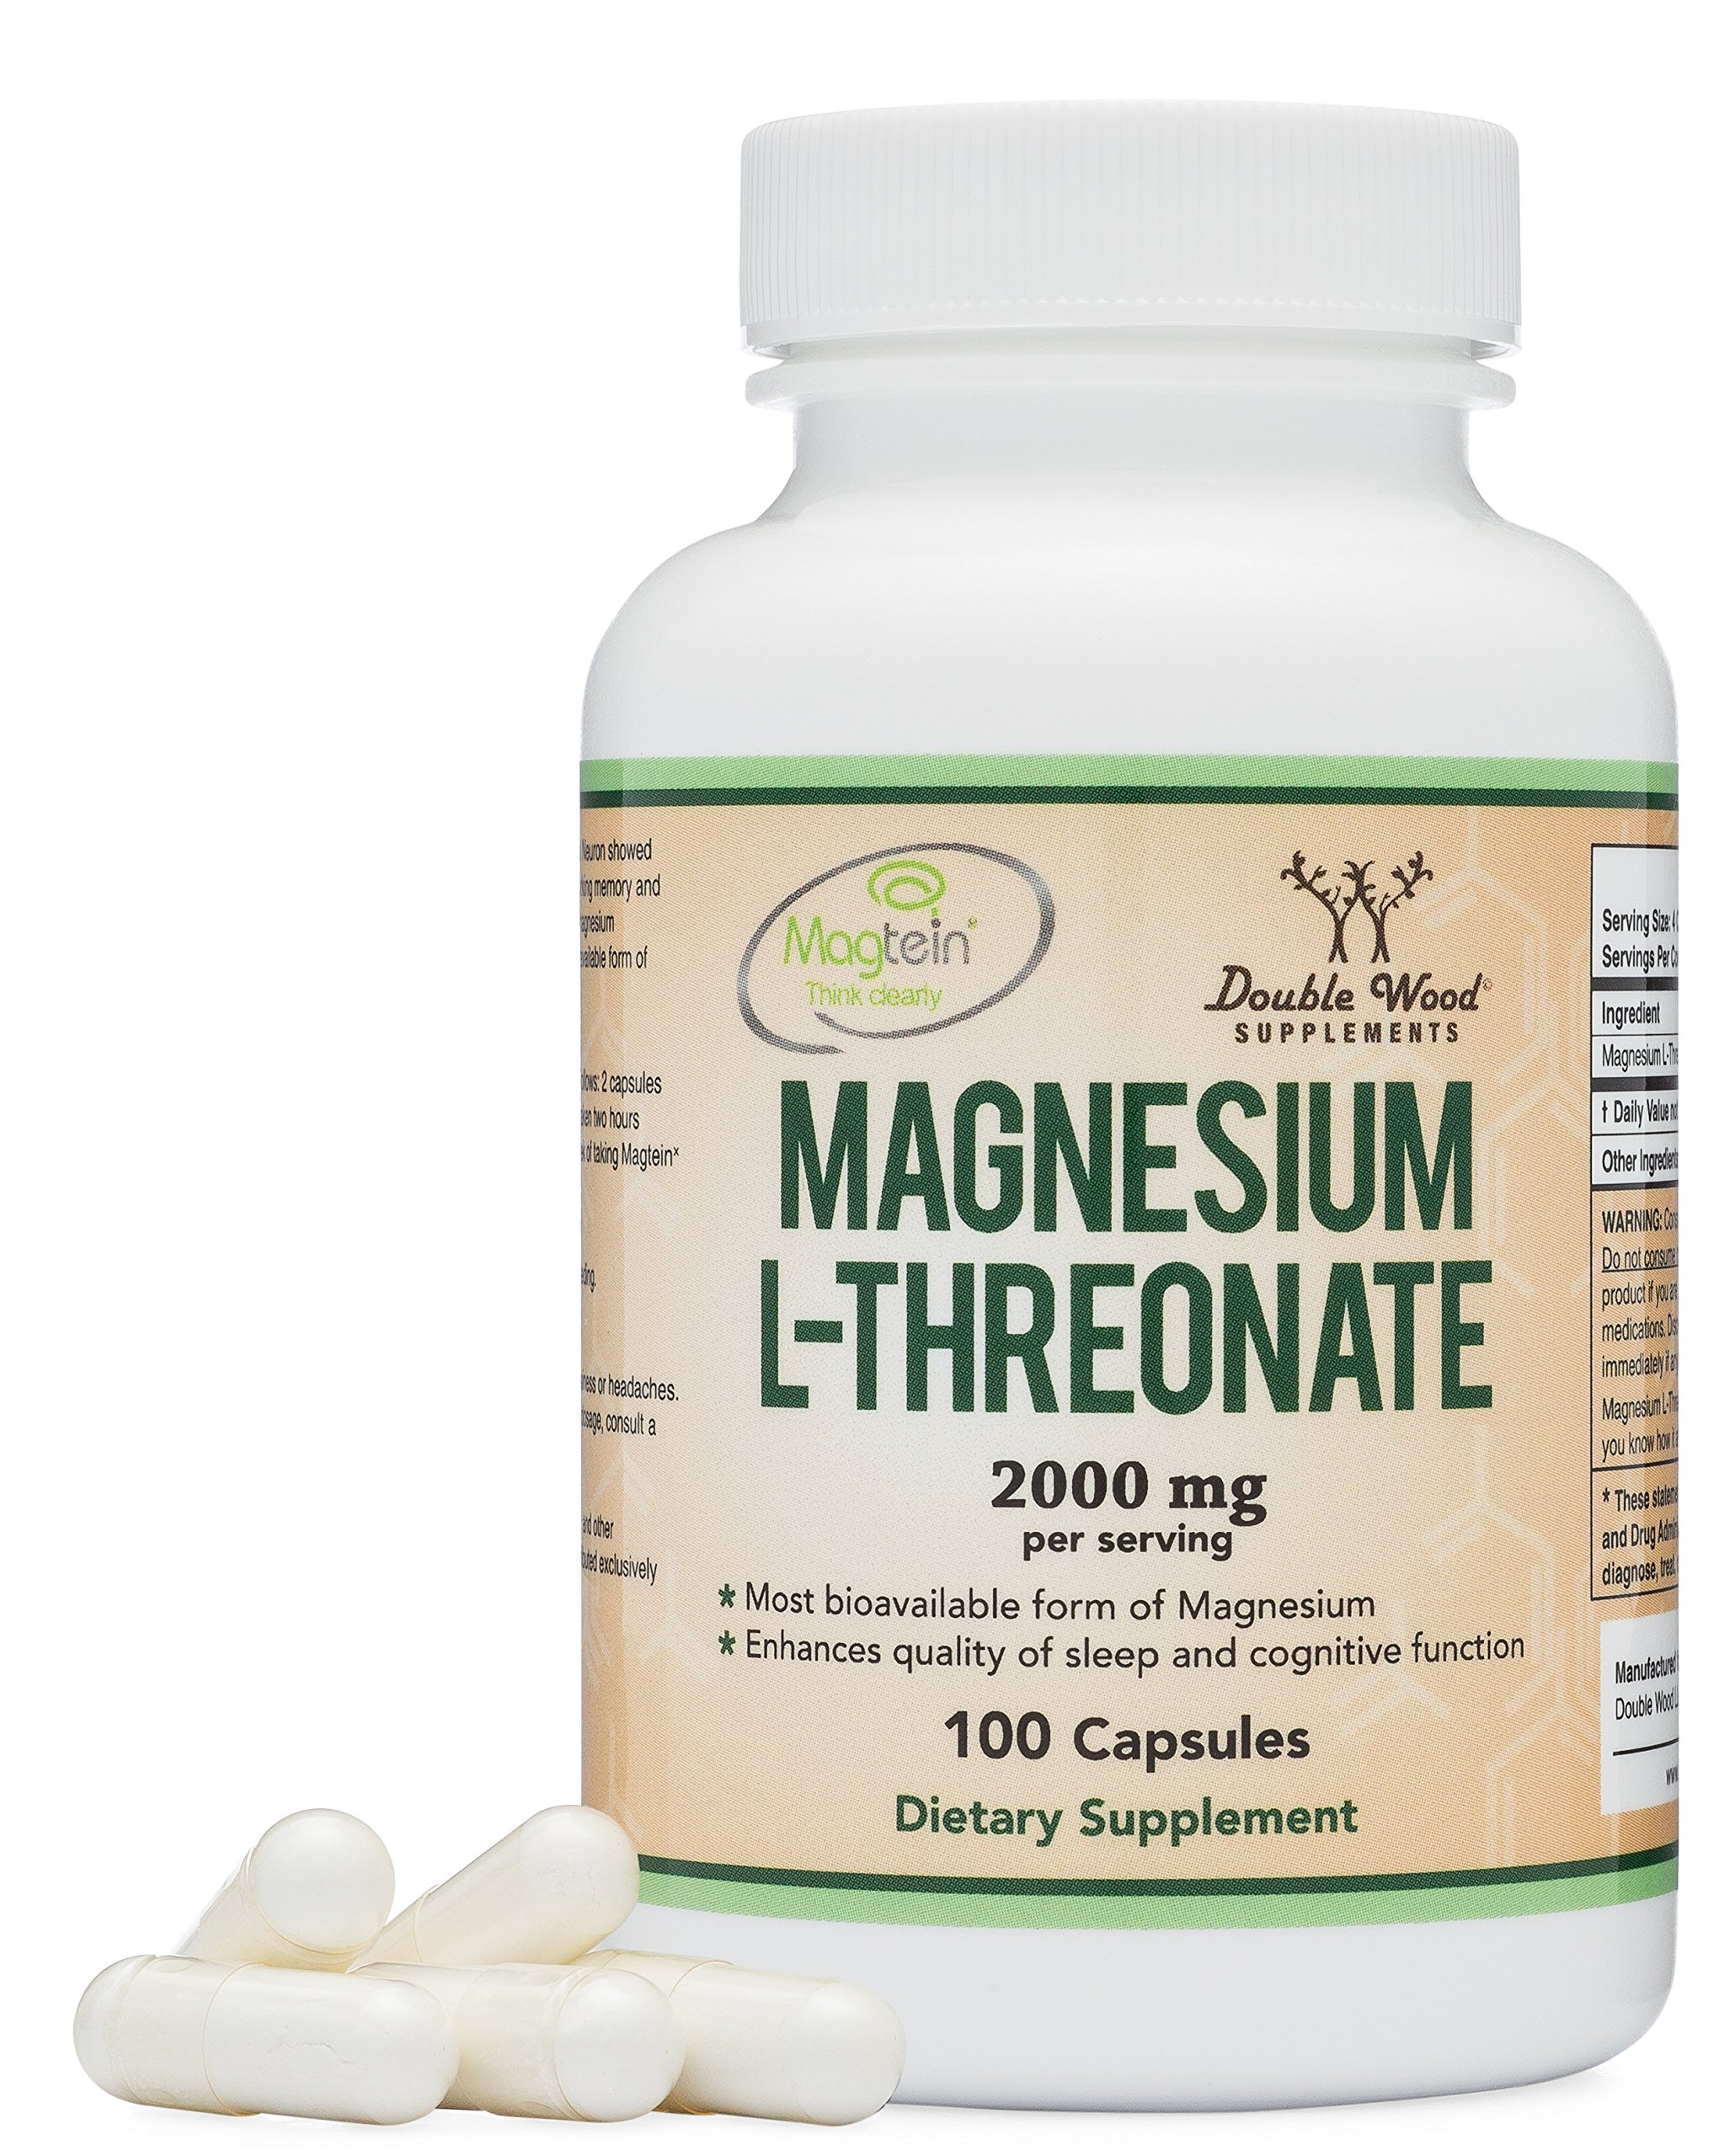 Magnesium L Threonate Capsules (Magtein) - High Absorption Supplement - Bioavailable Form - 2,000 mg - 100 Capsules by Double Wood Supplements